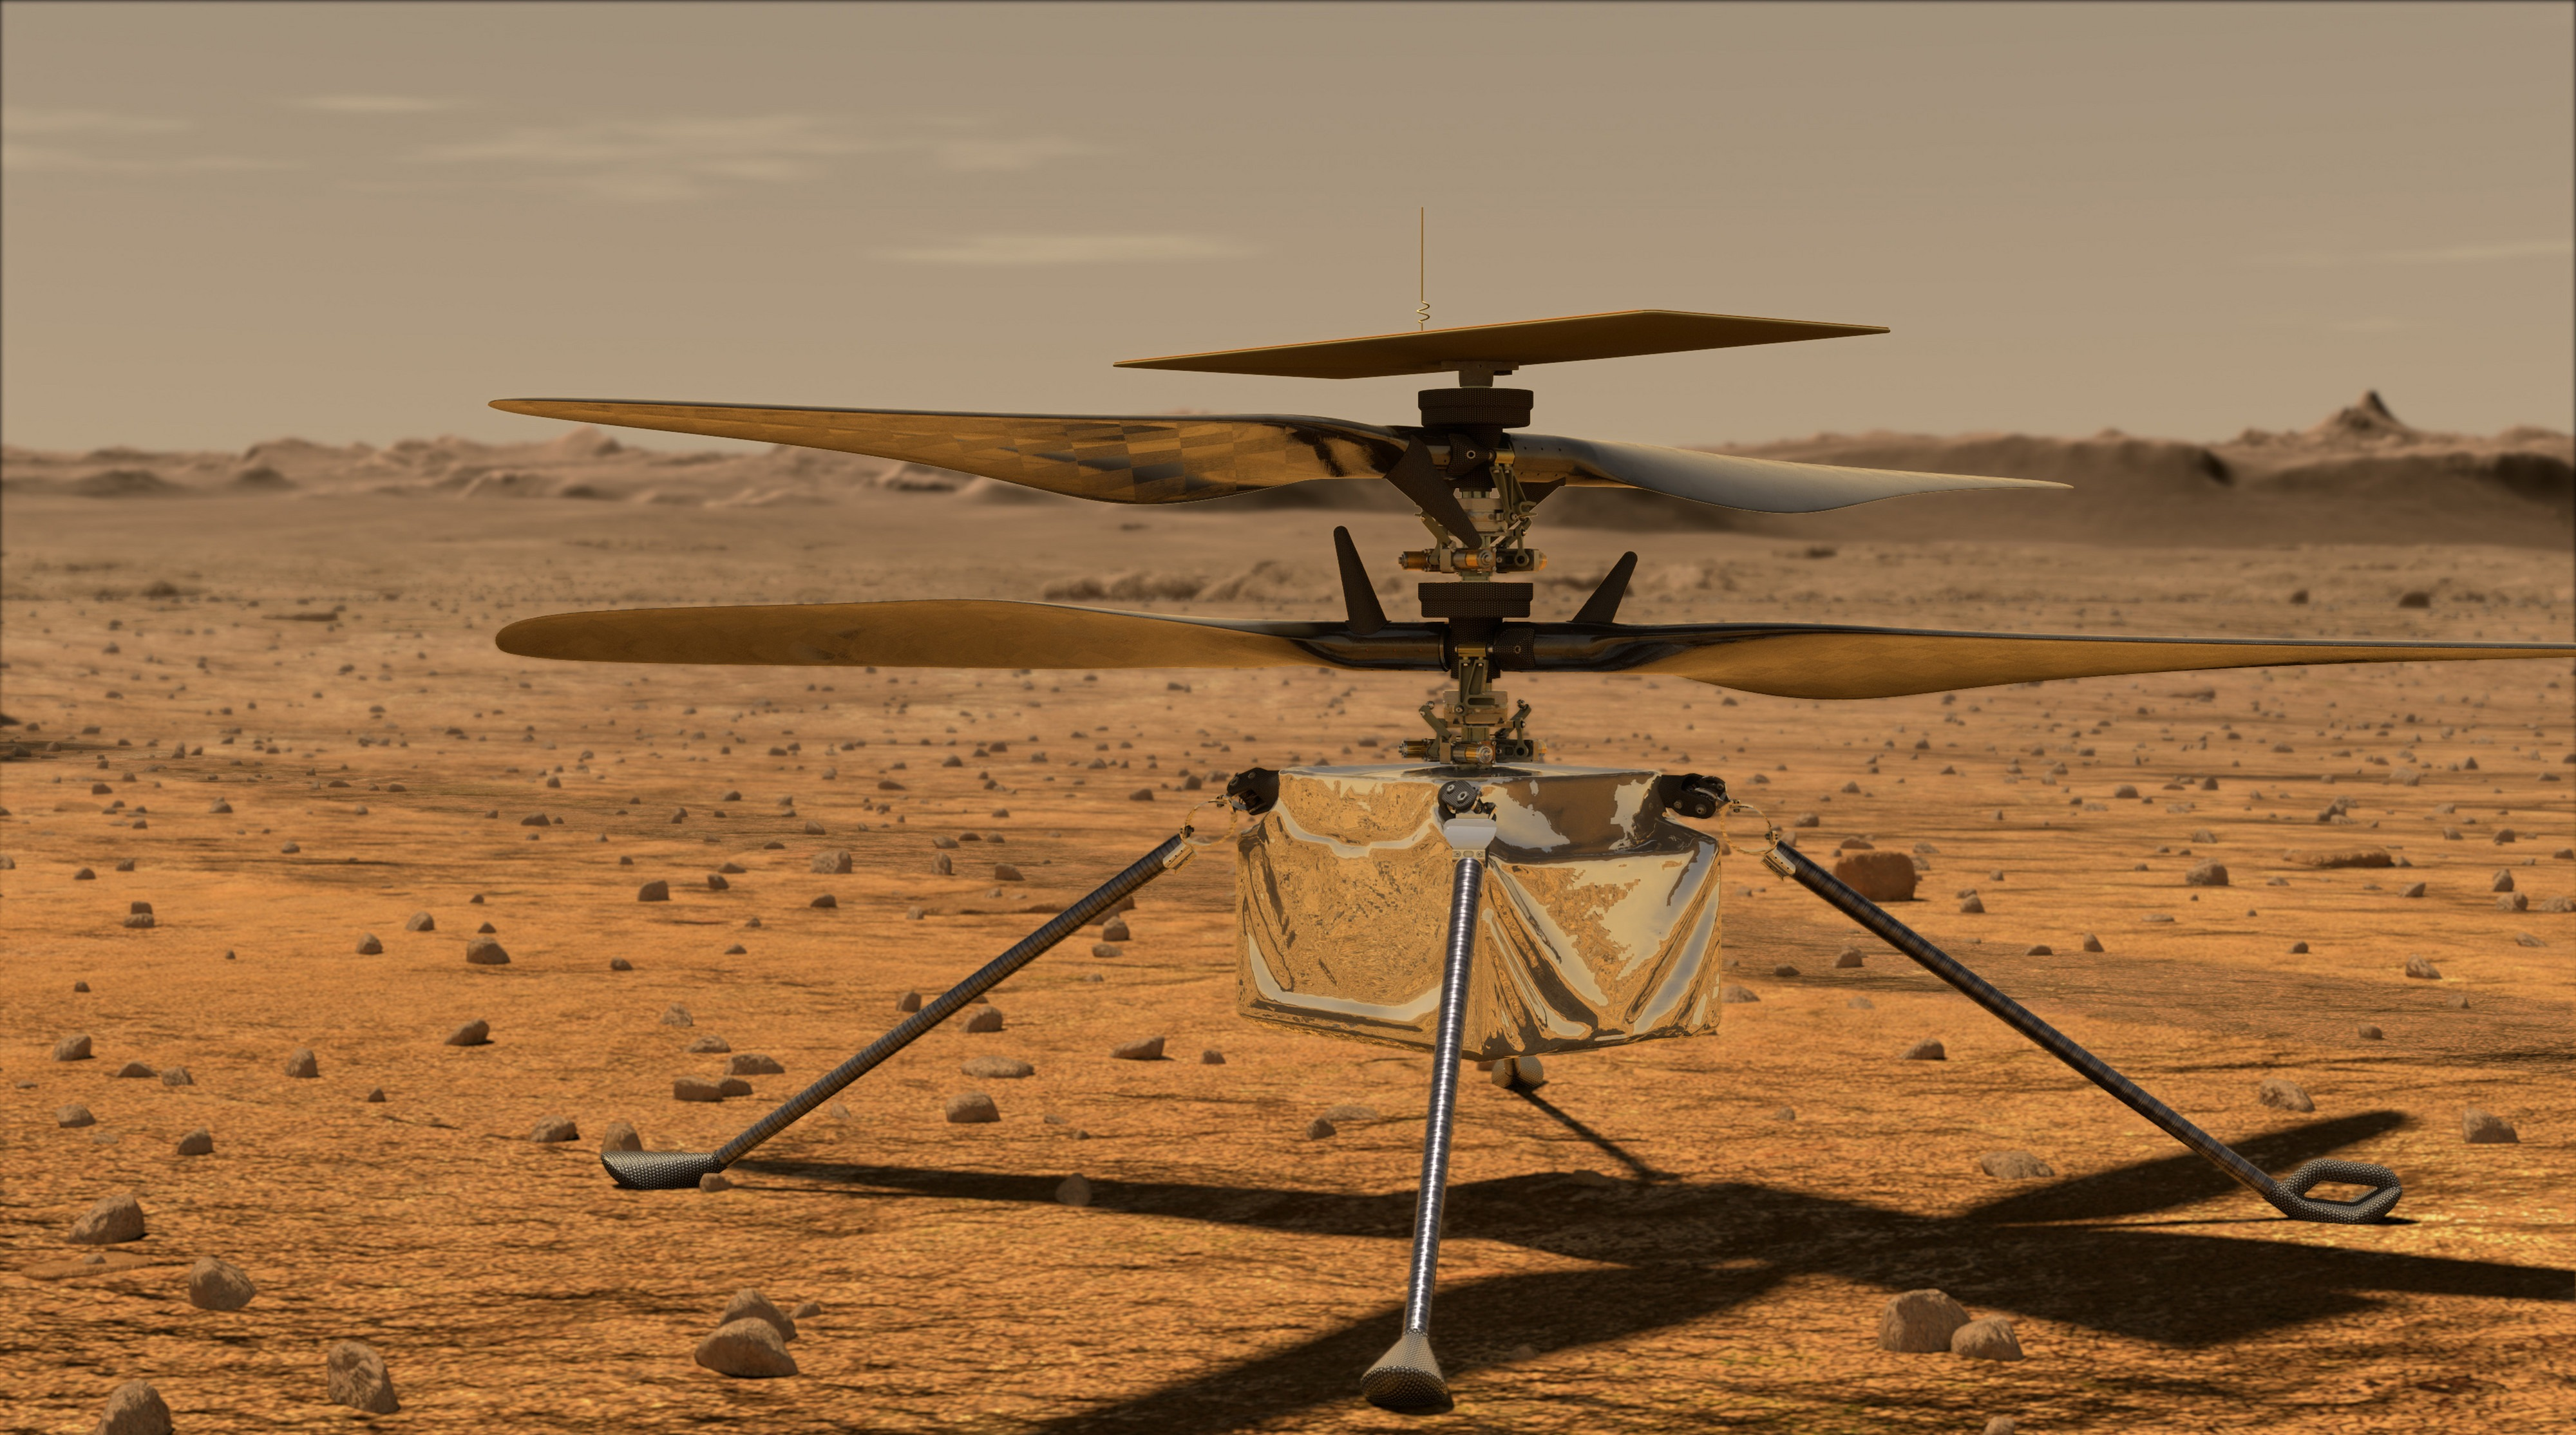 An illustration of NASA's Ingenuity Mars Helicopter on Mars